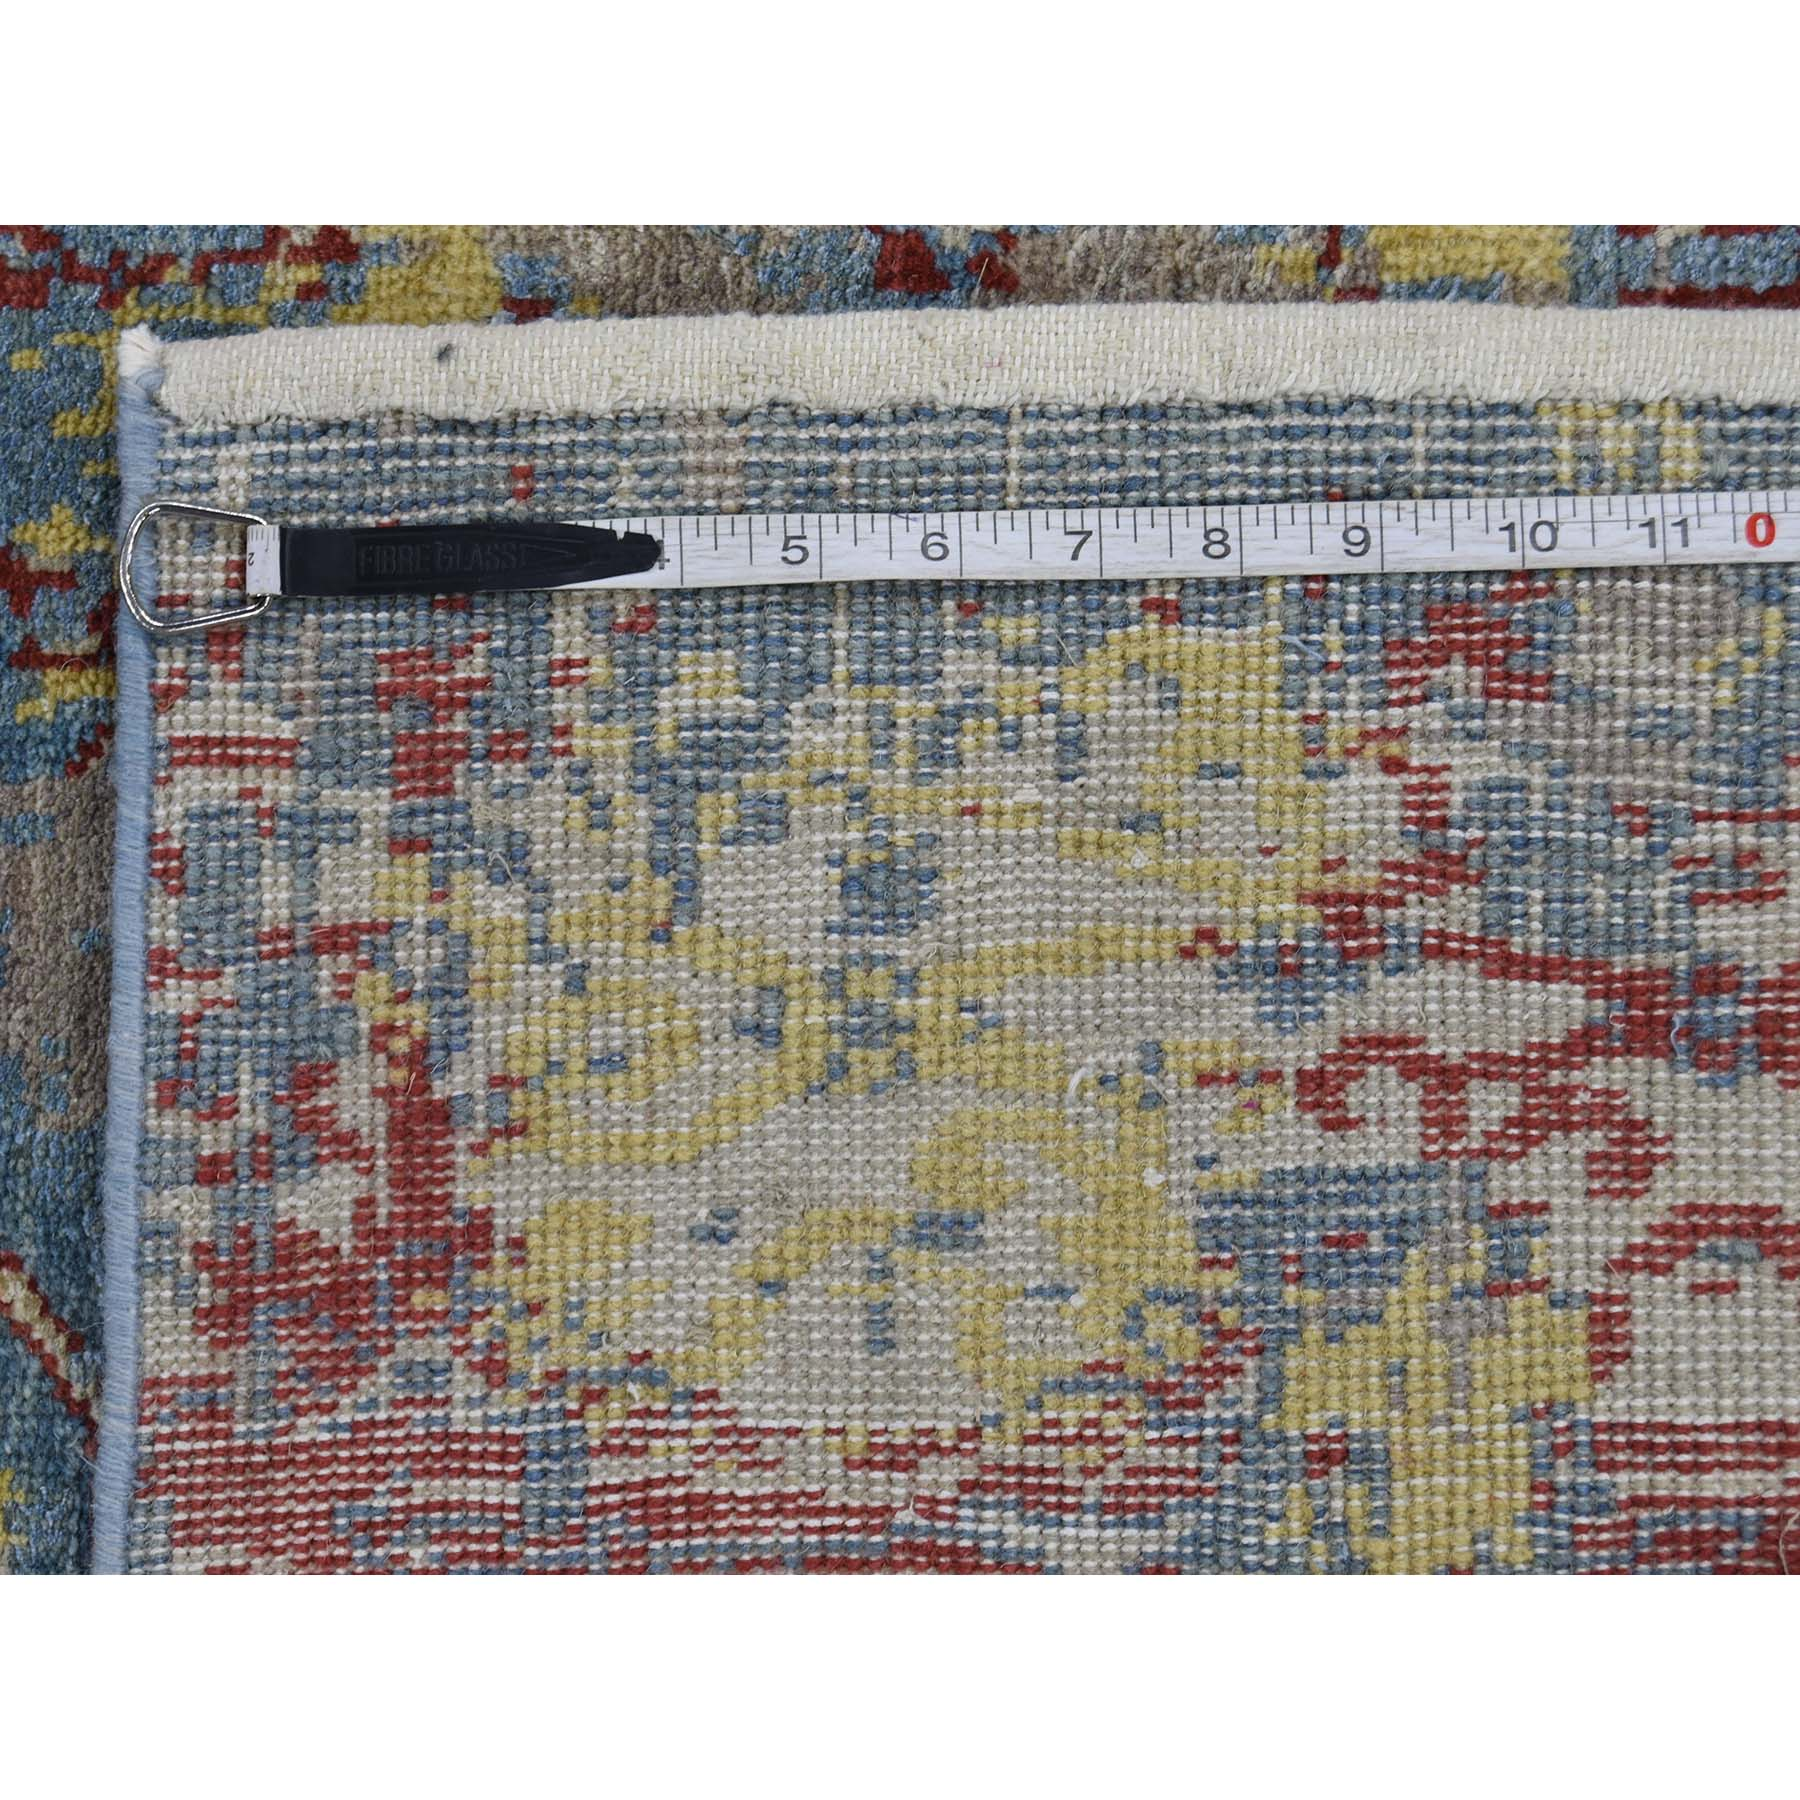 2-5 x8- Hand-Knotted Silk With Oxidized Wool Broken Design Rug